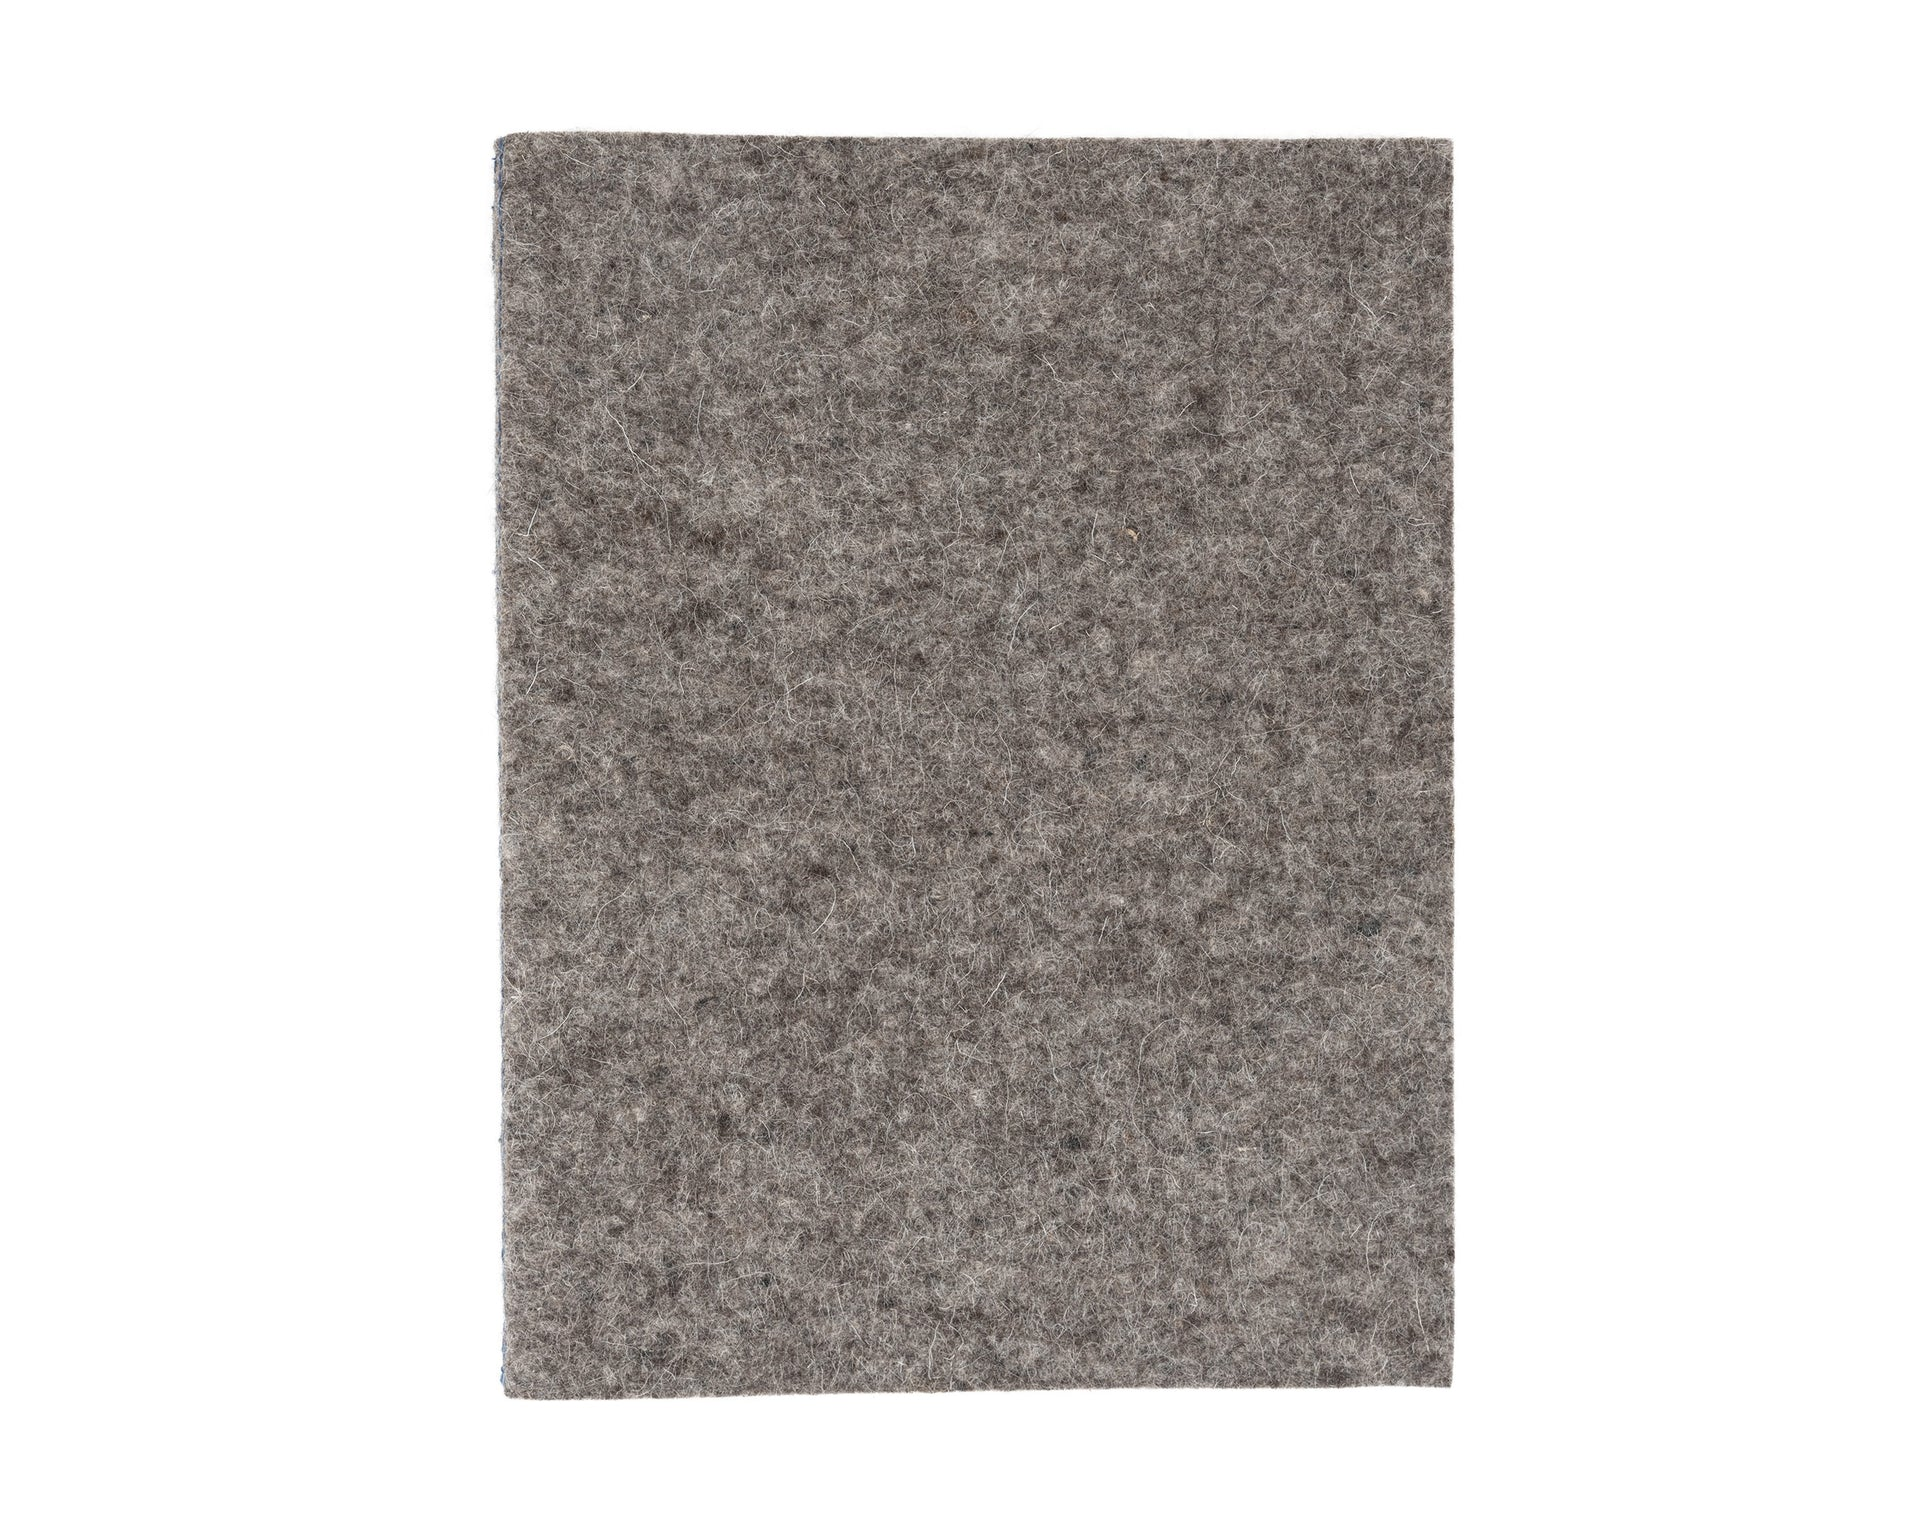 Recycled Paper Notebook - Grey Cover